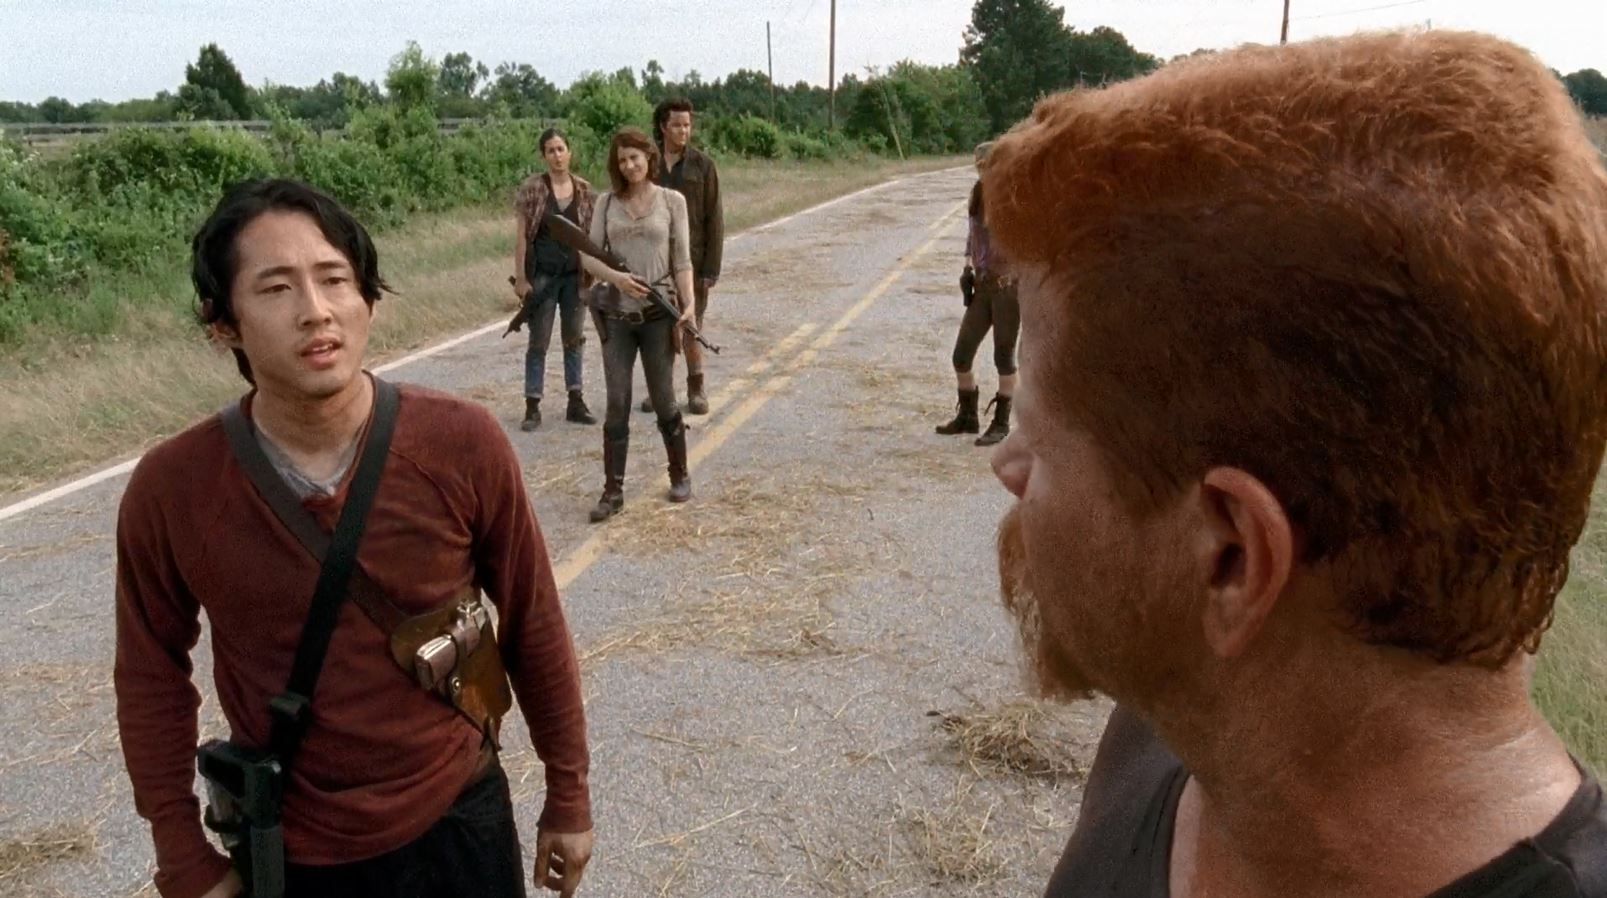 Glenn confronts Abraham about going south - The Walking Dead - Self Help - Review